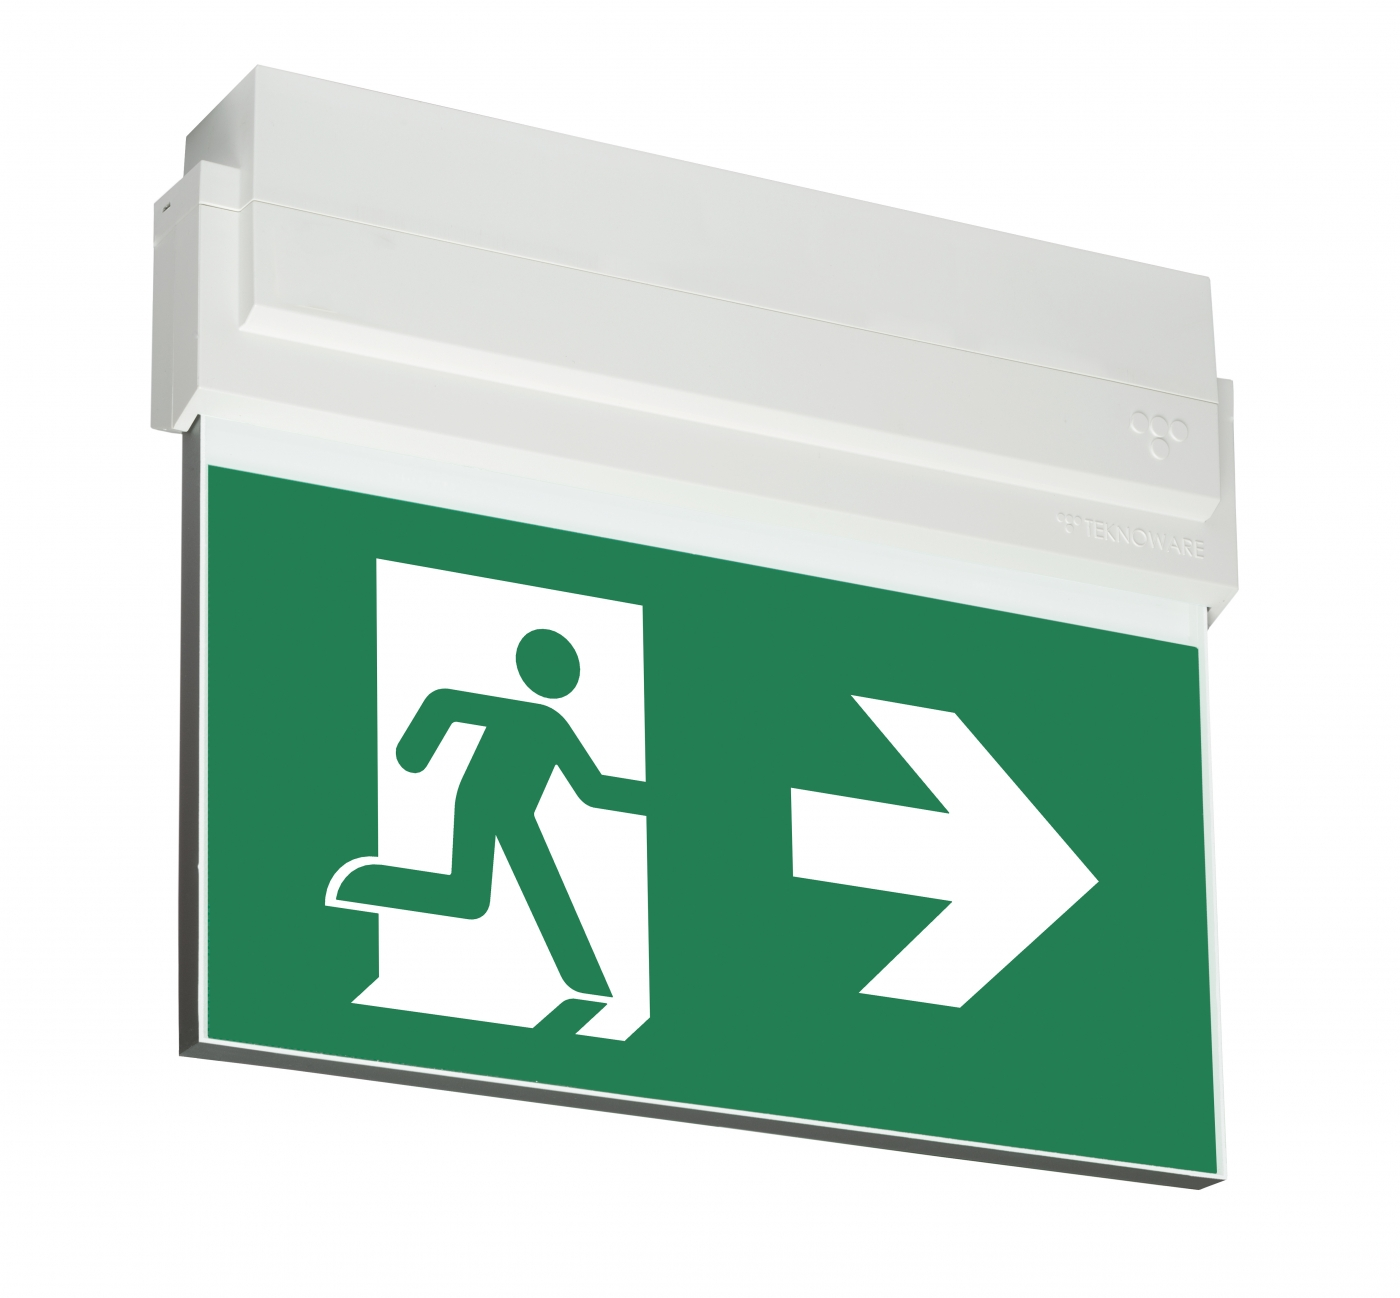 ESC 80 LED Emergency Exit Light Y8041W138